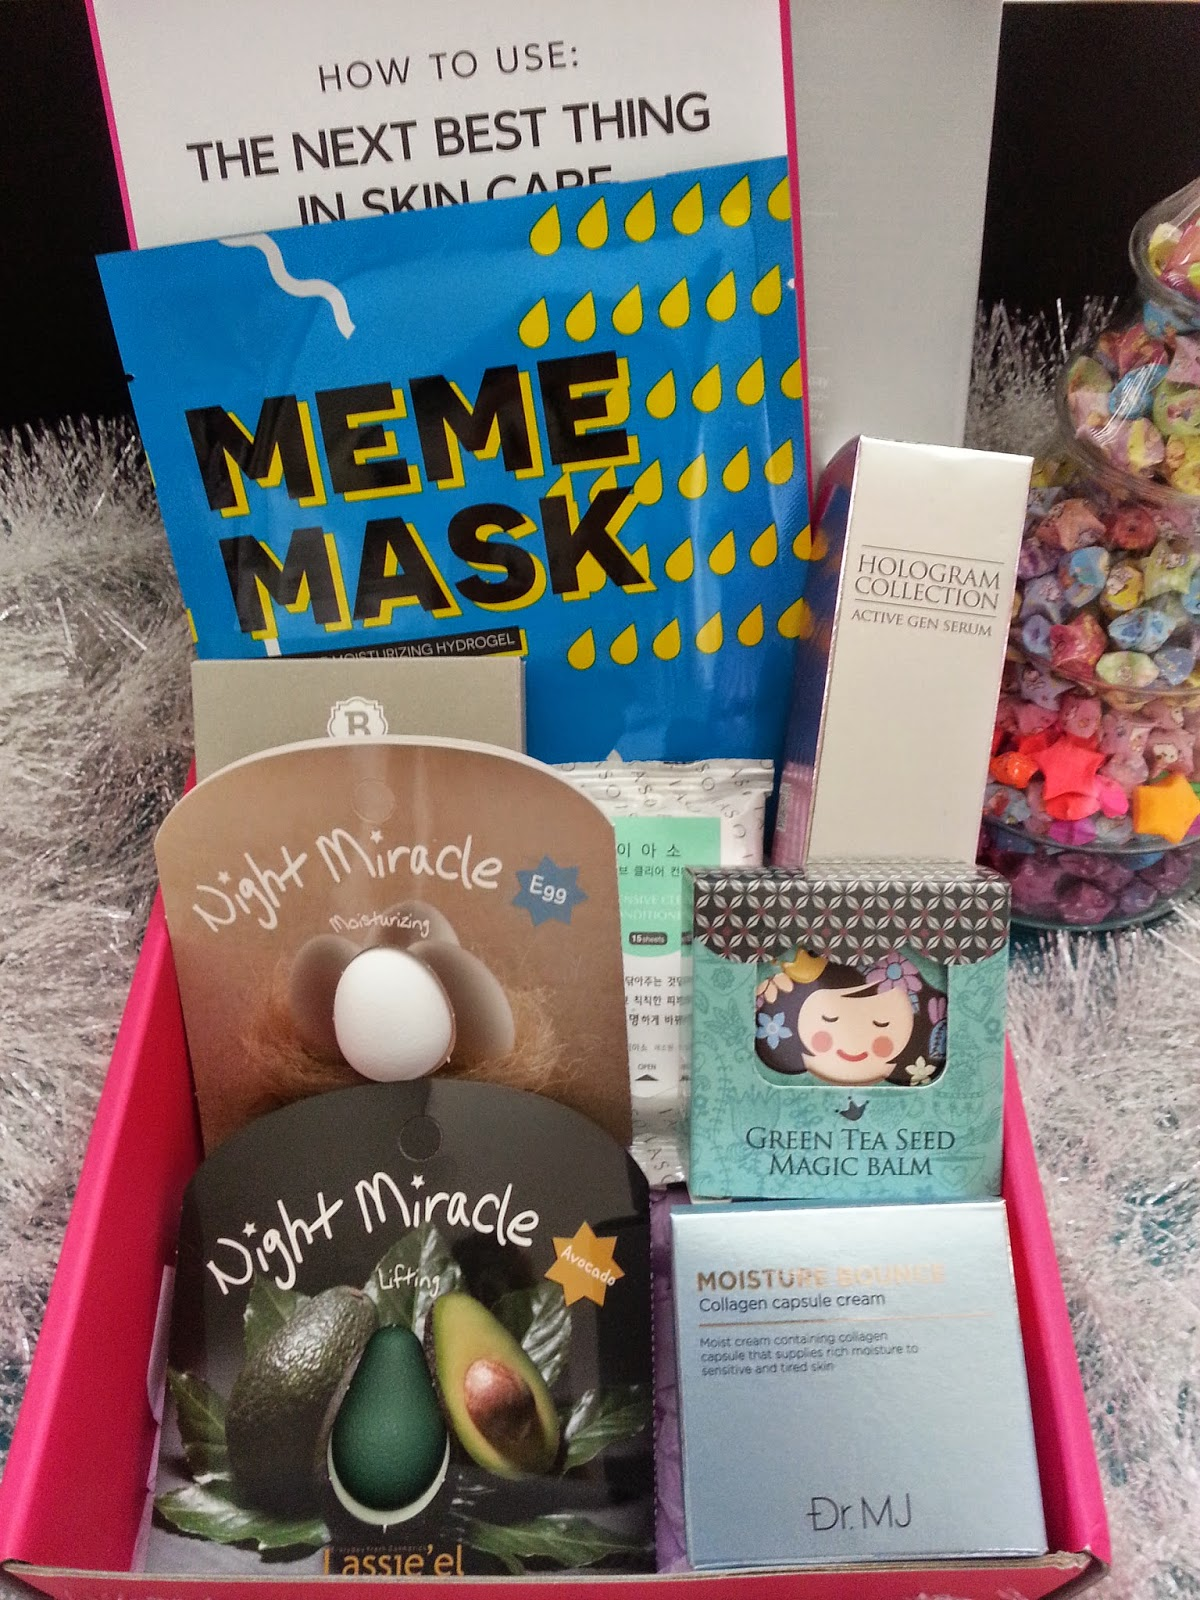 Memebox The Next Best Thing In Skin Care